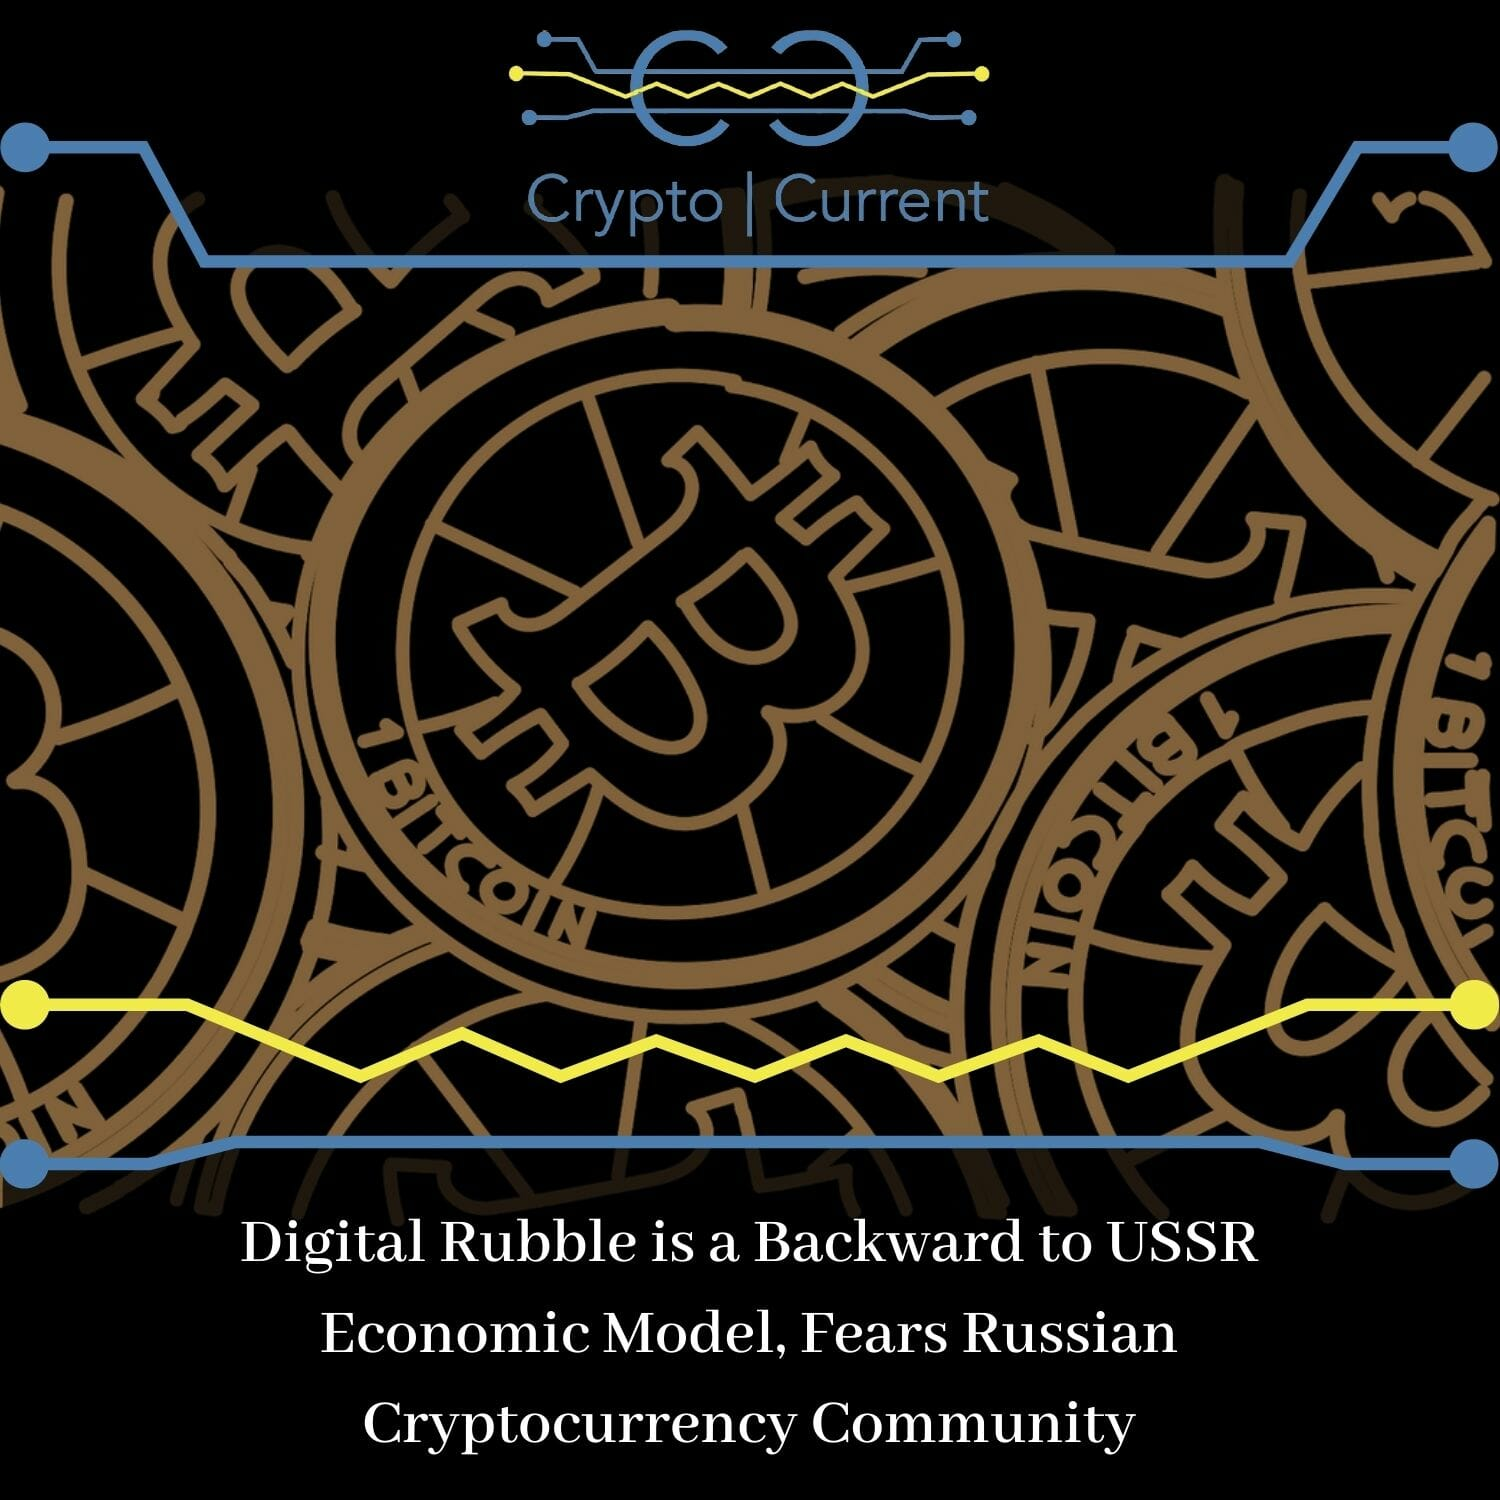 Digital Rubble is a Backward to USSR Economic Model, Fears Russian Cryptocurrency Community